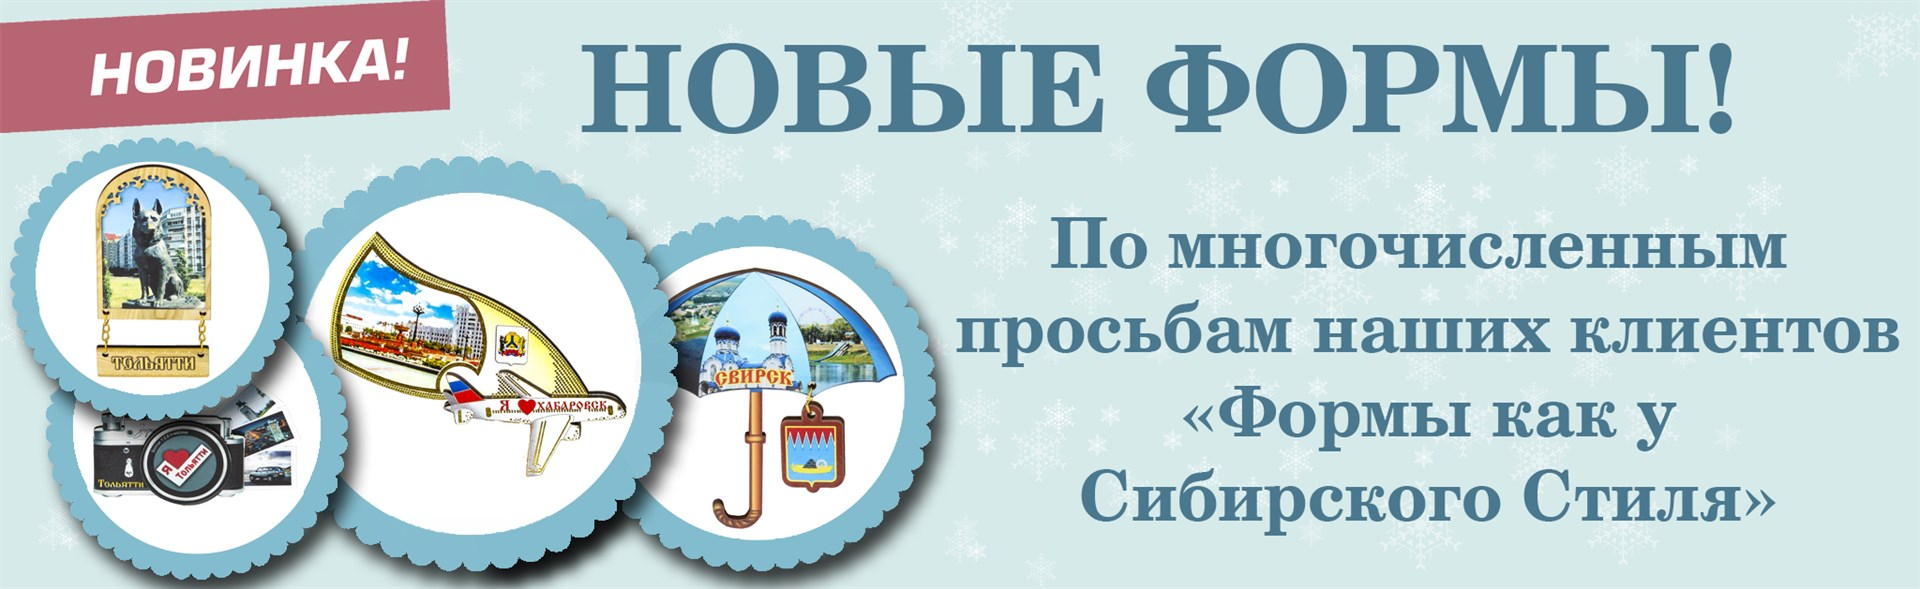 https://fabrikasuvenir.ru/categories/sibirskii-stil